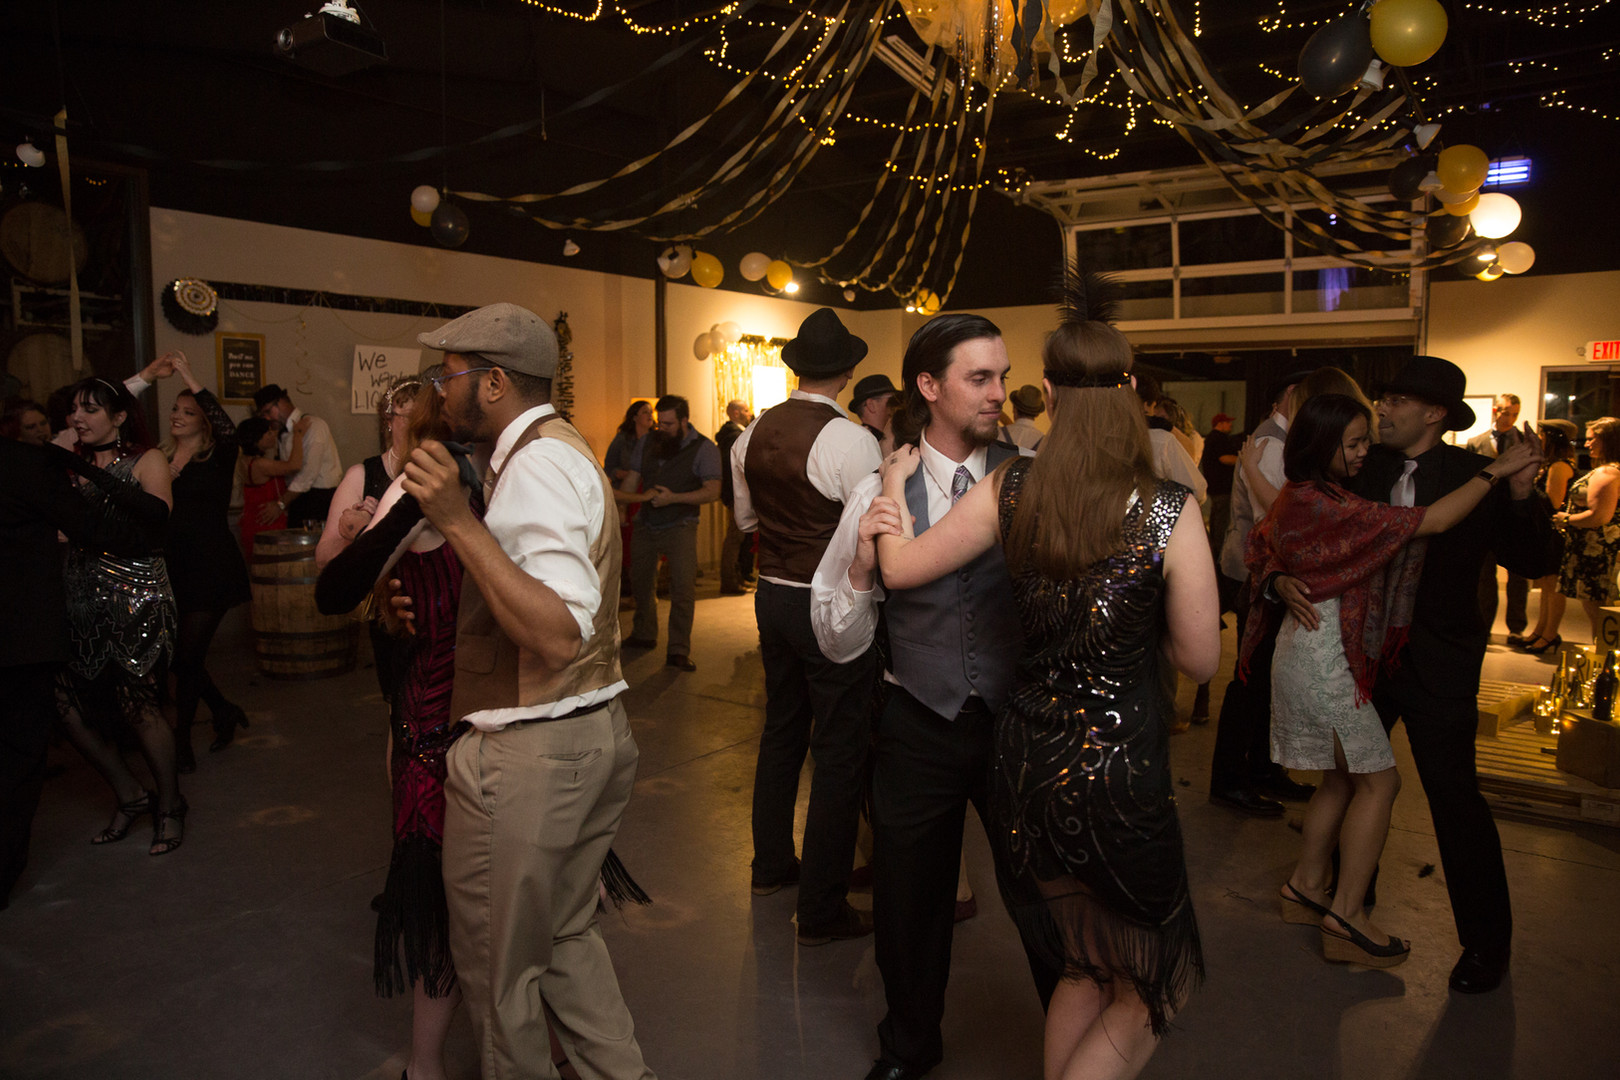 Couples swing dancing during a prohibition-themed party.